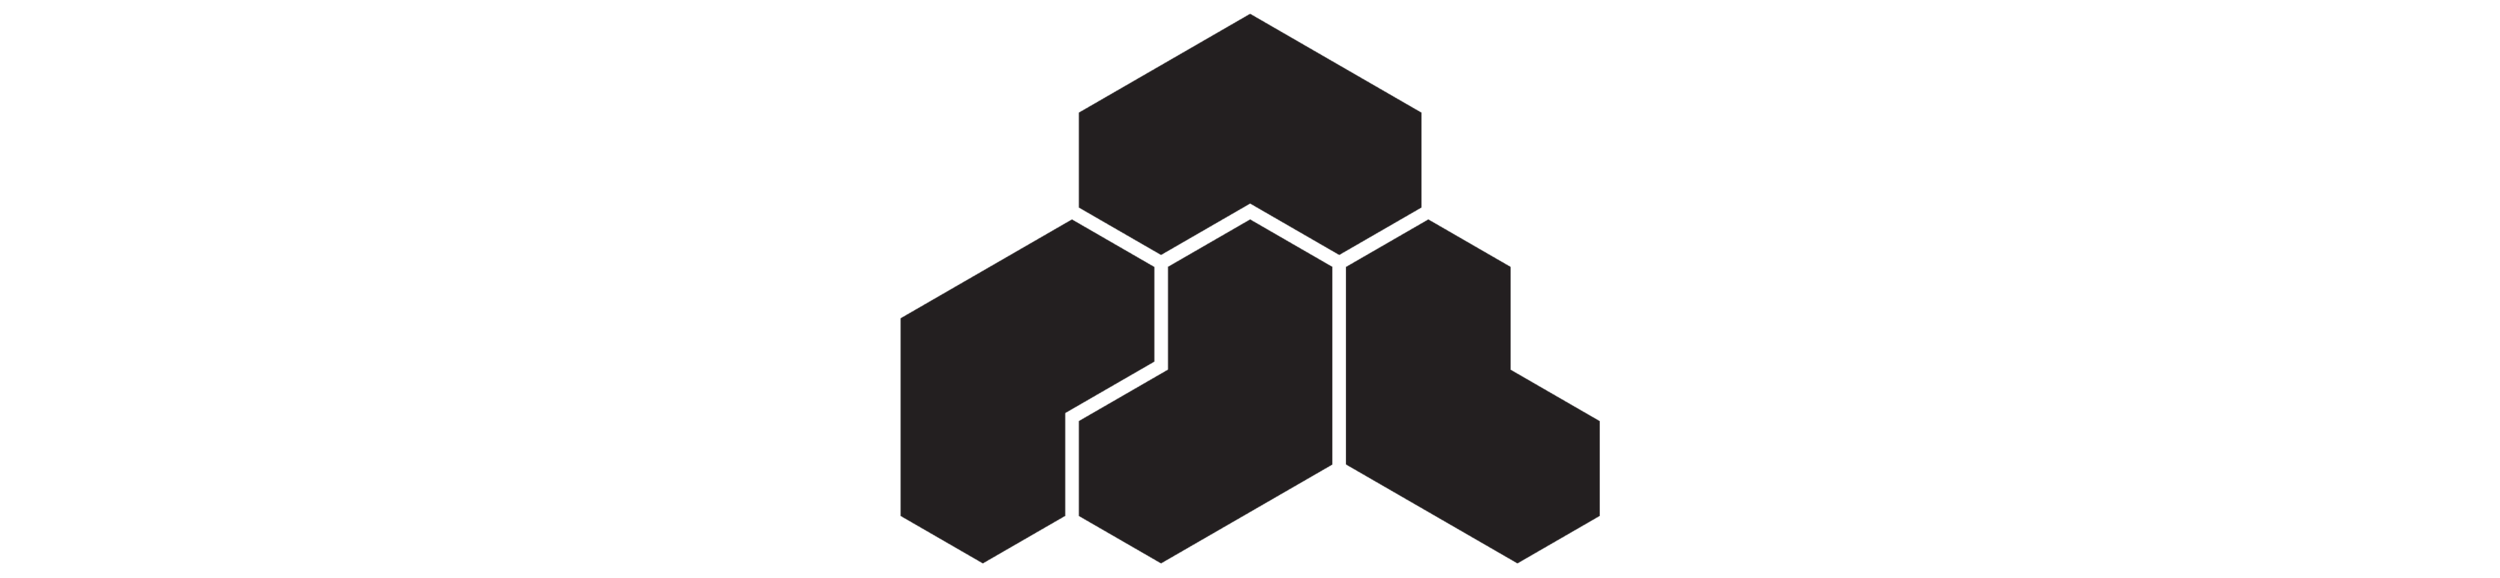 icon-Hex_patt_01.png